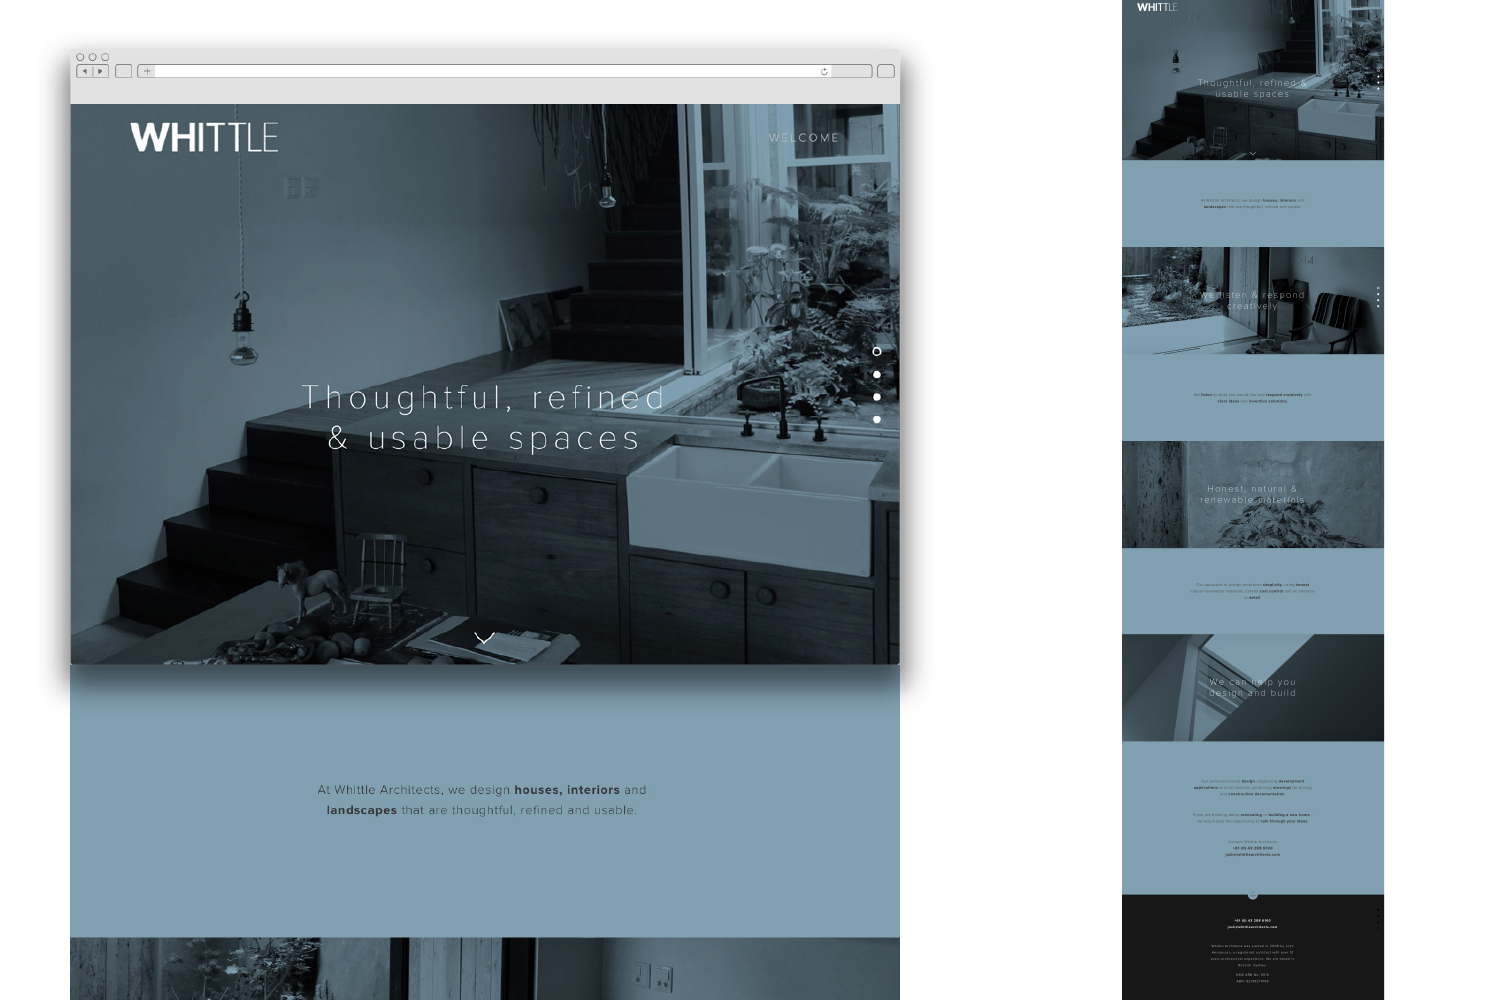 whittle-architects-7-website-page-layout